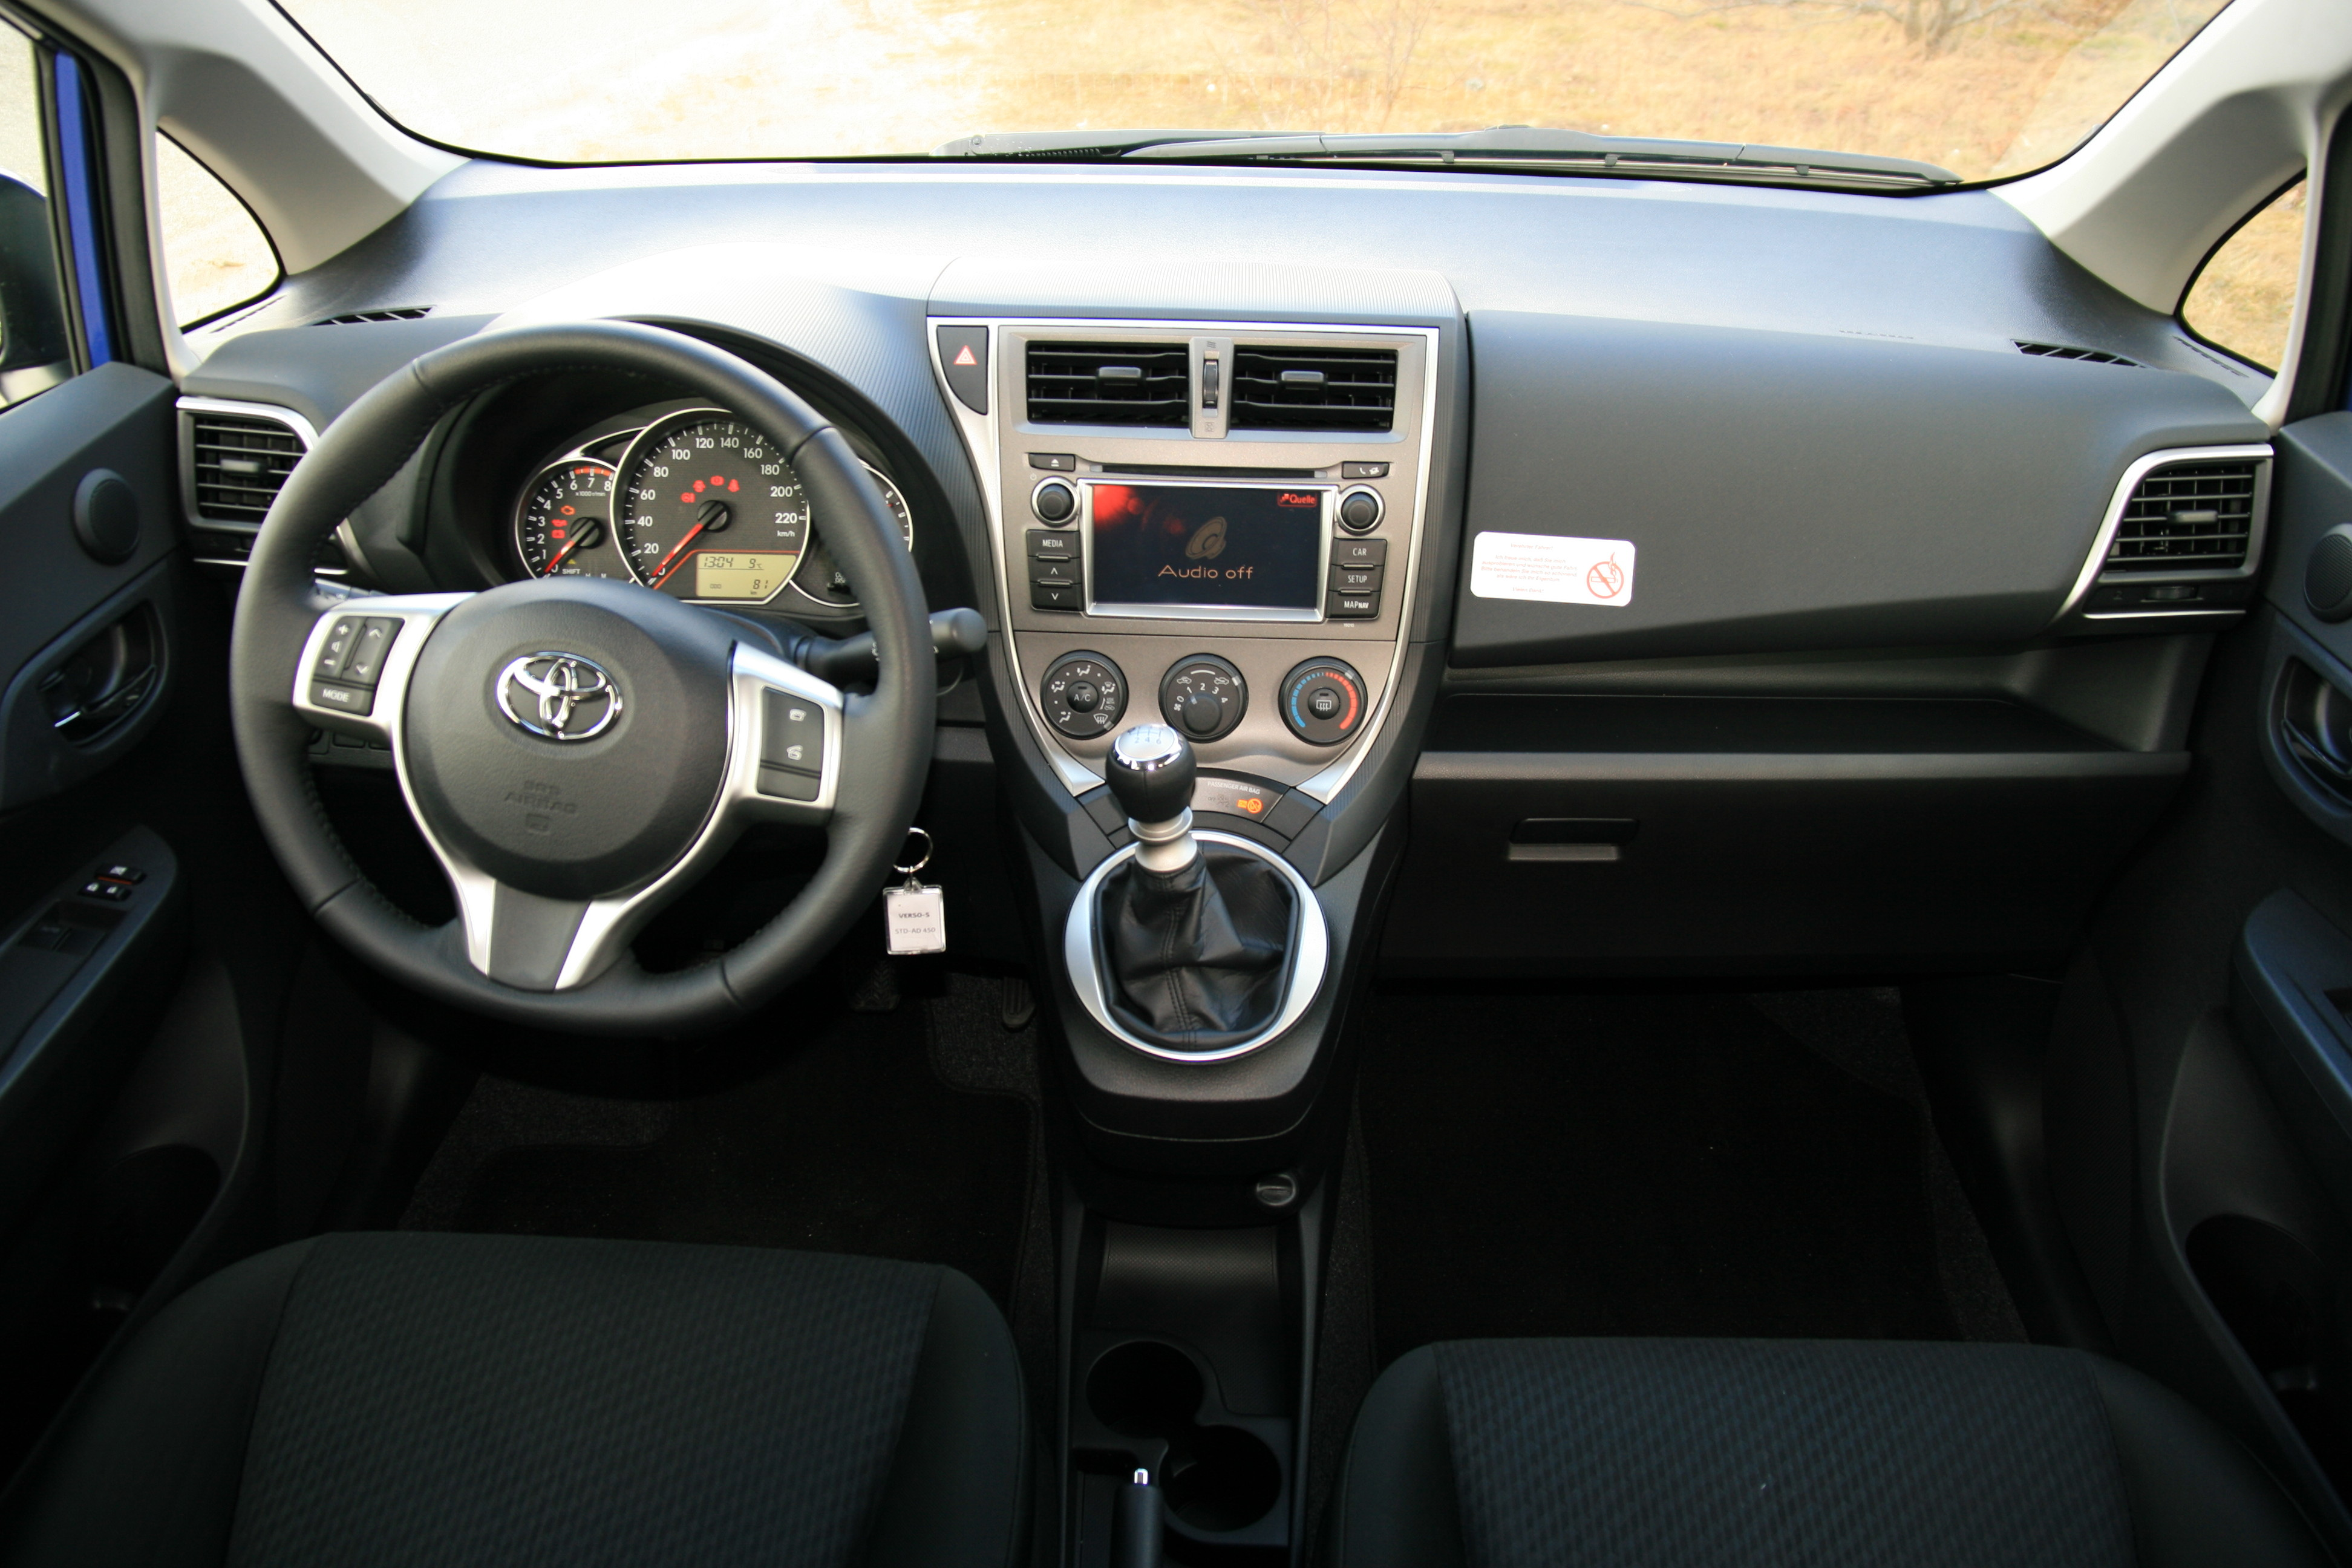 Toyota Verso Pictures Information And Specs 2015 Interior Wallpaper 8